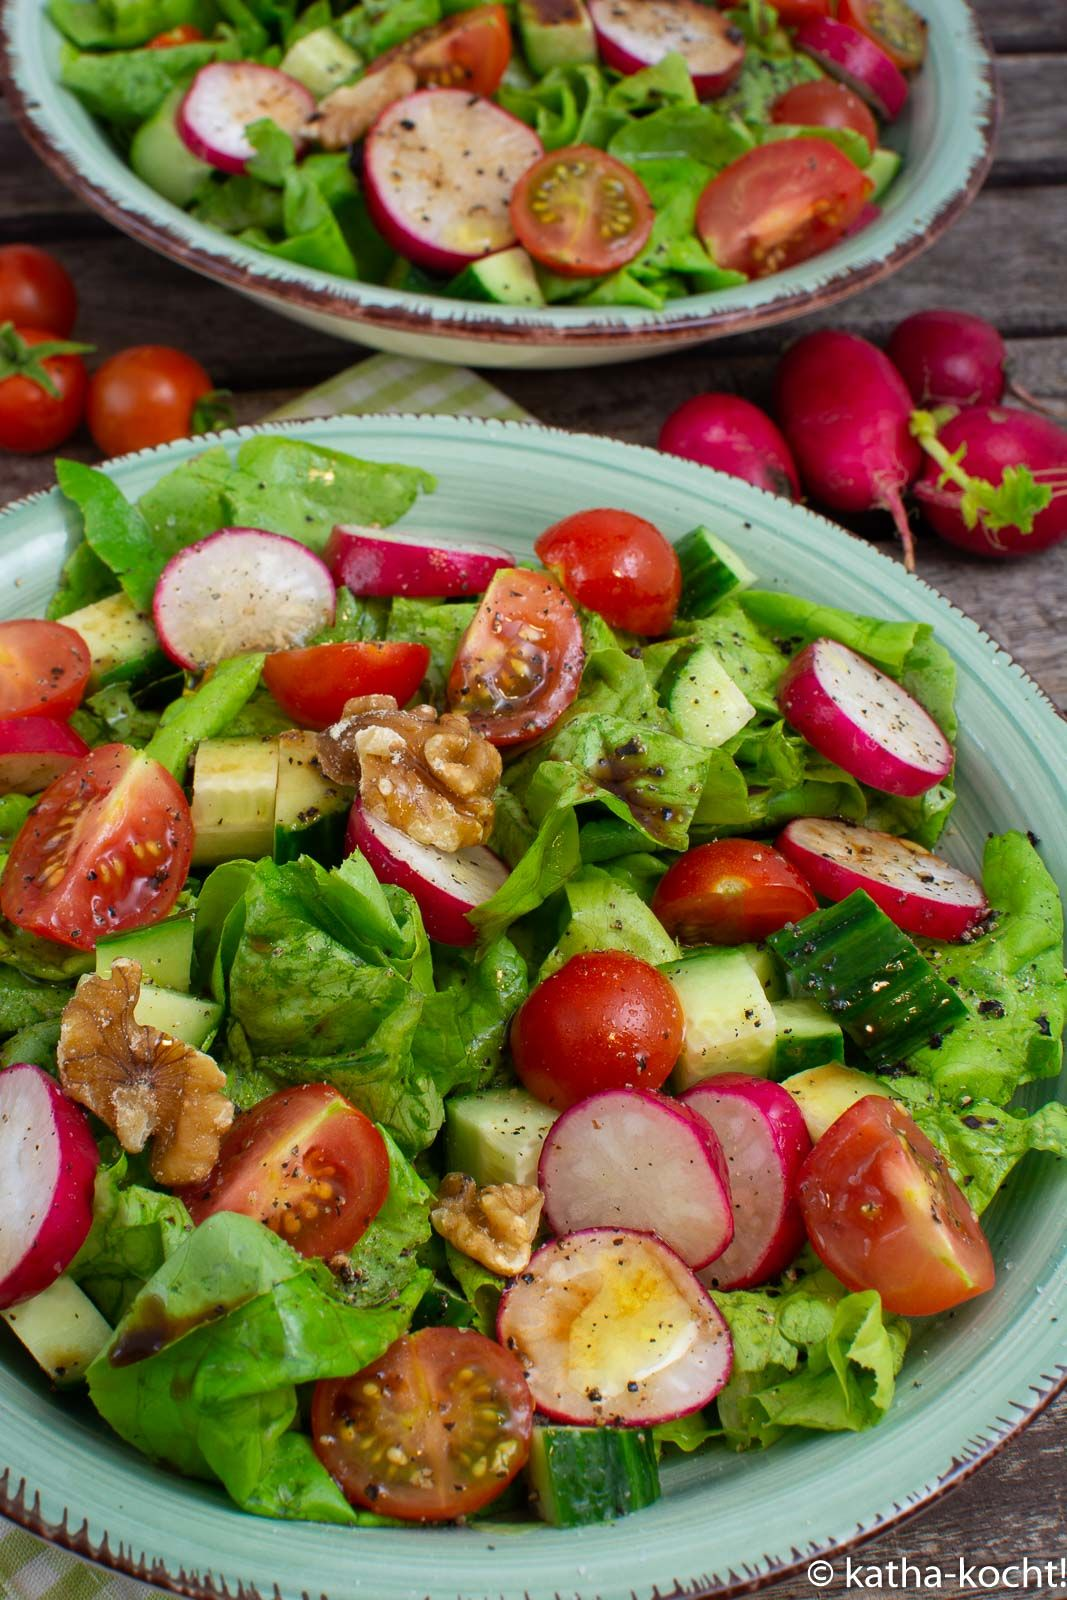 Photo of Spicy, colorful salad with walnuts – Katha-cooks!